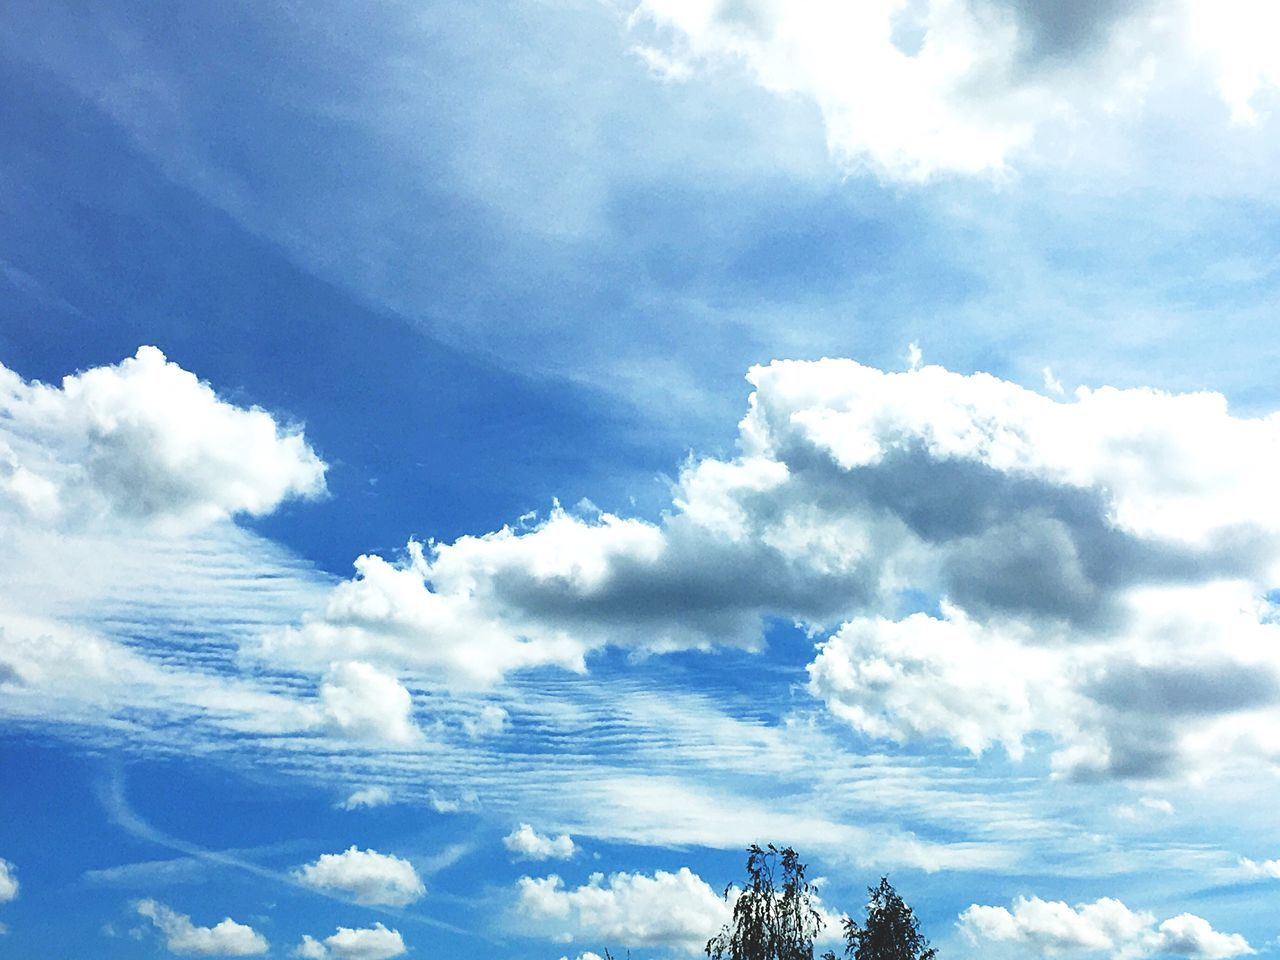 sky, beauty in nature, low angle view, cloud - sky, nature, scenics, day, tranquility, no people, outdoors, blue, backgrounds, tree